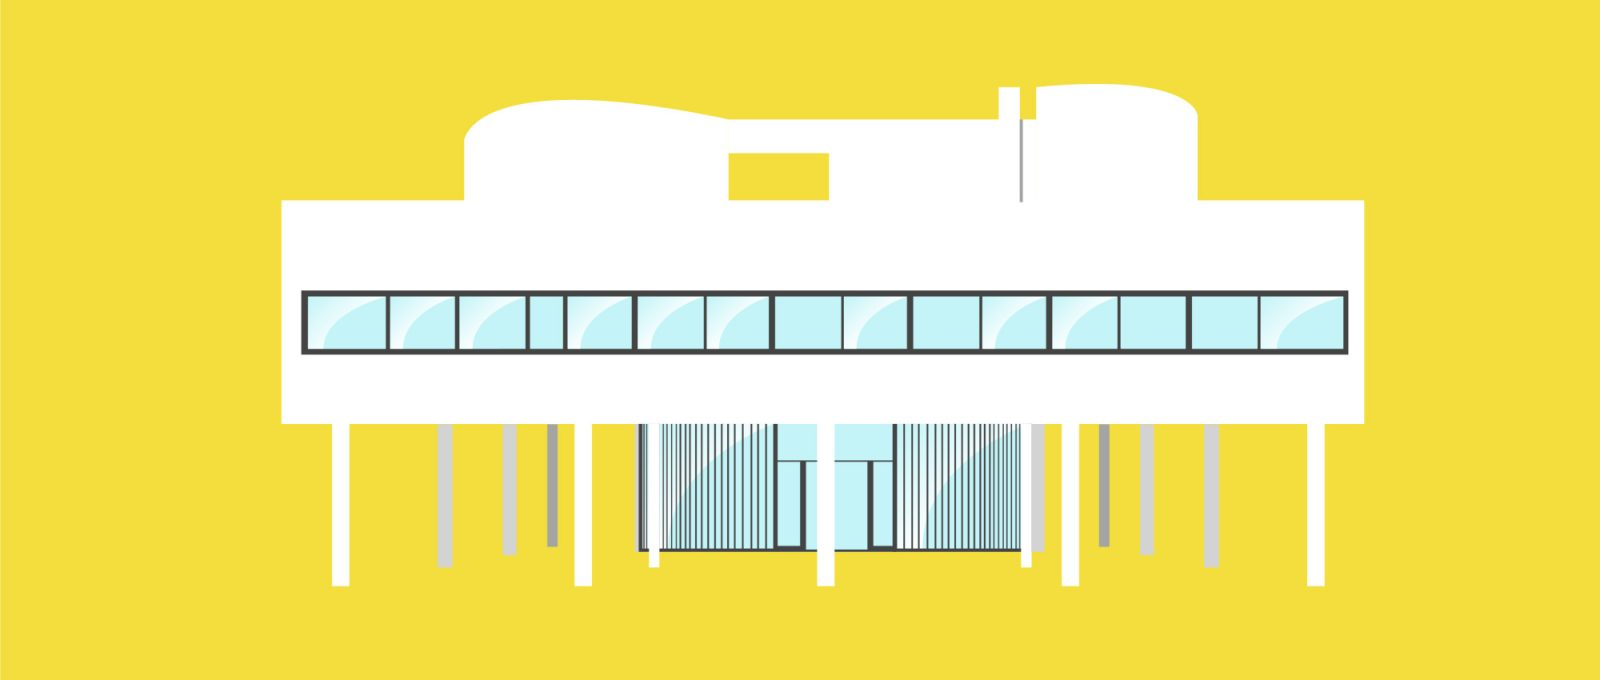 Short video for Breakfast – The most Iconic Houses in Matteo Muci's illustrated video